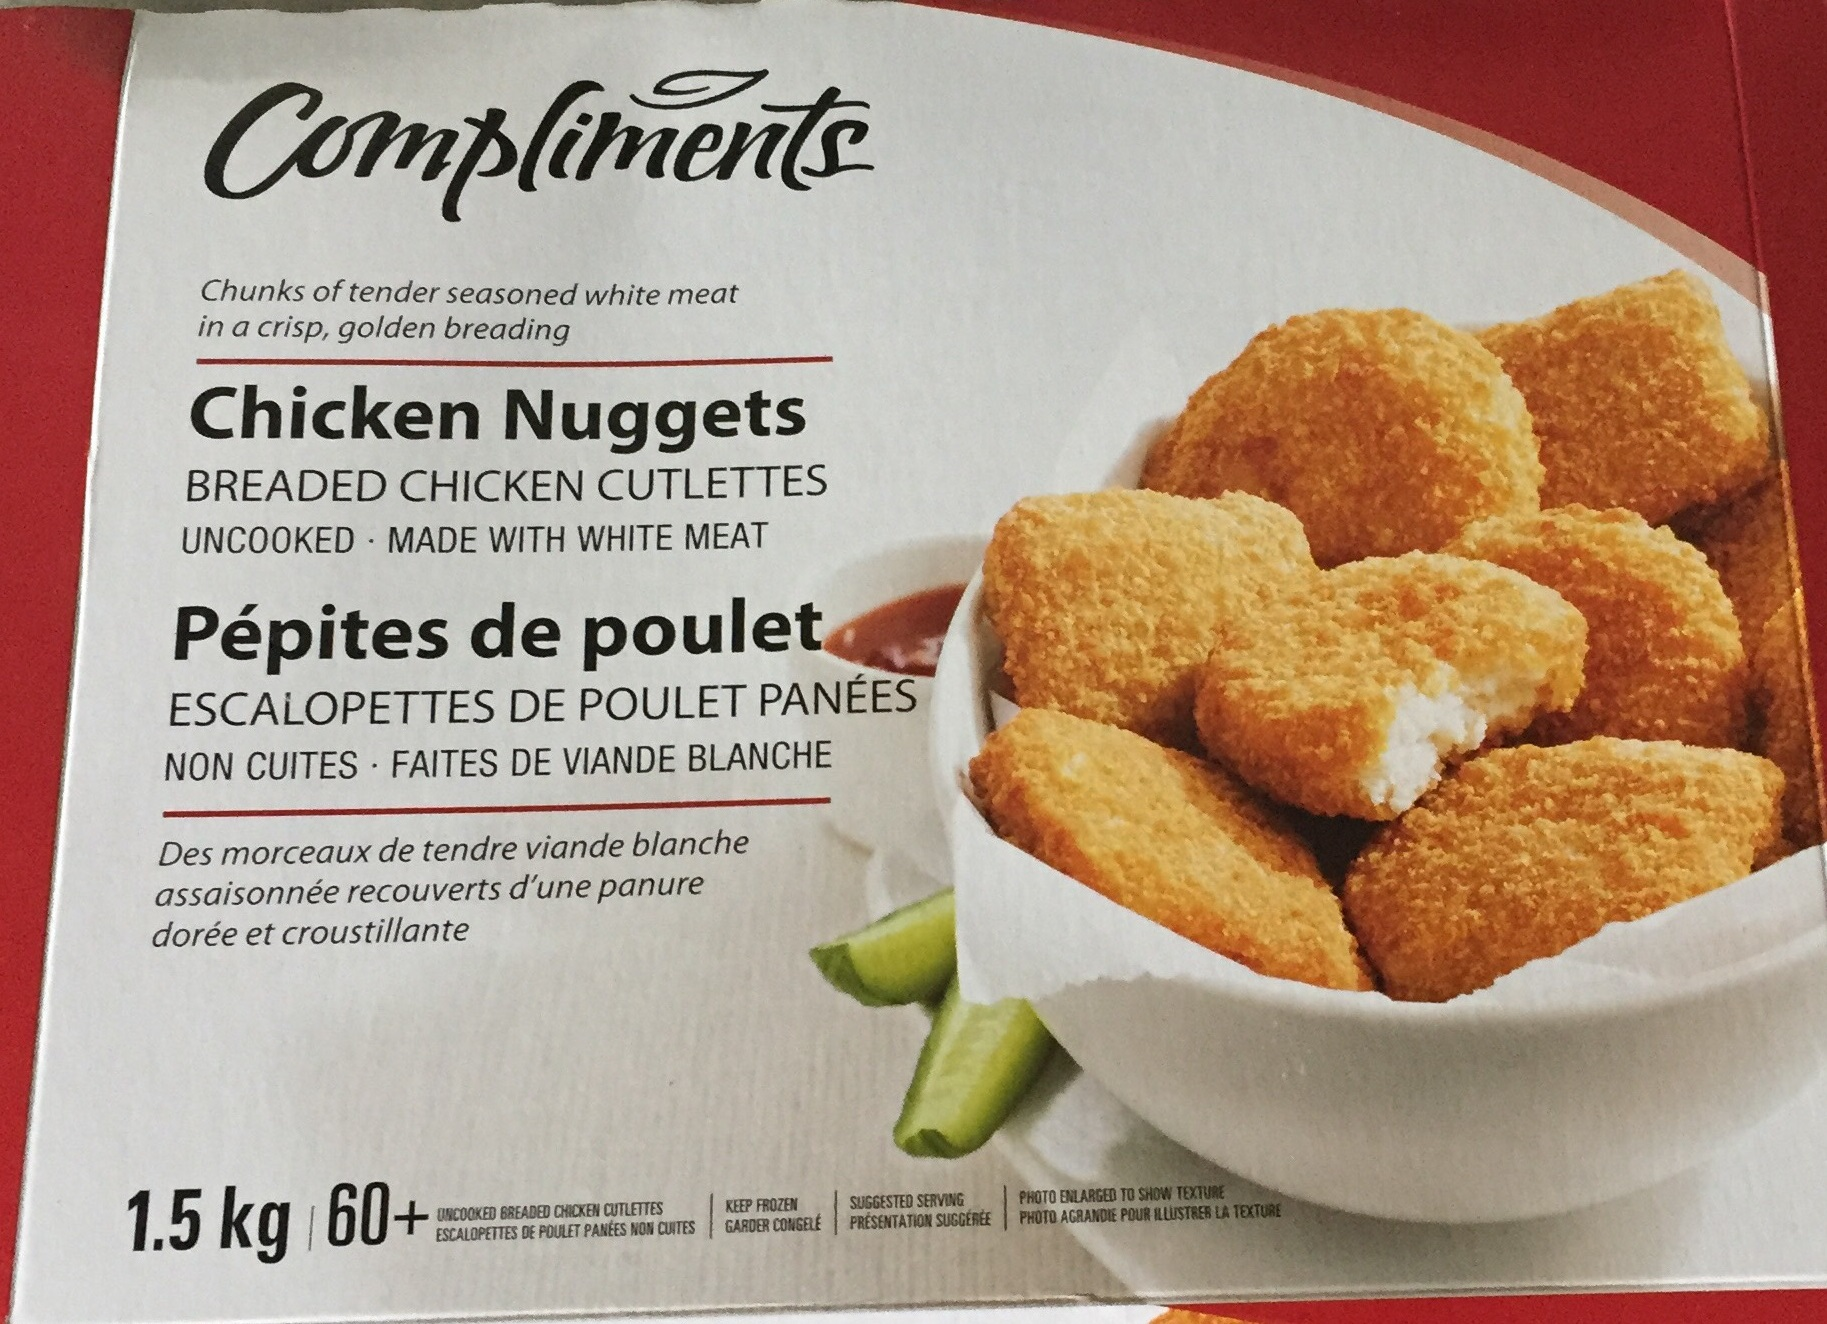 Compliments Chicken Nuggets, 2019 JL 18 - Outer box, front